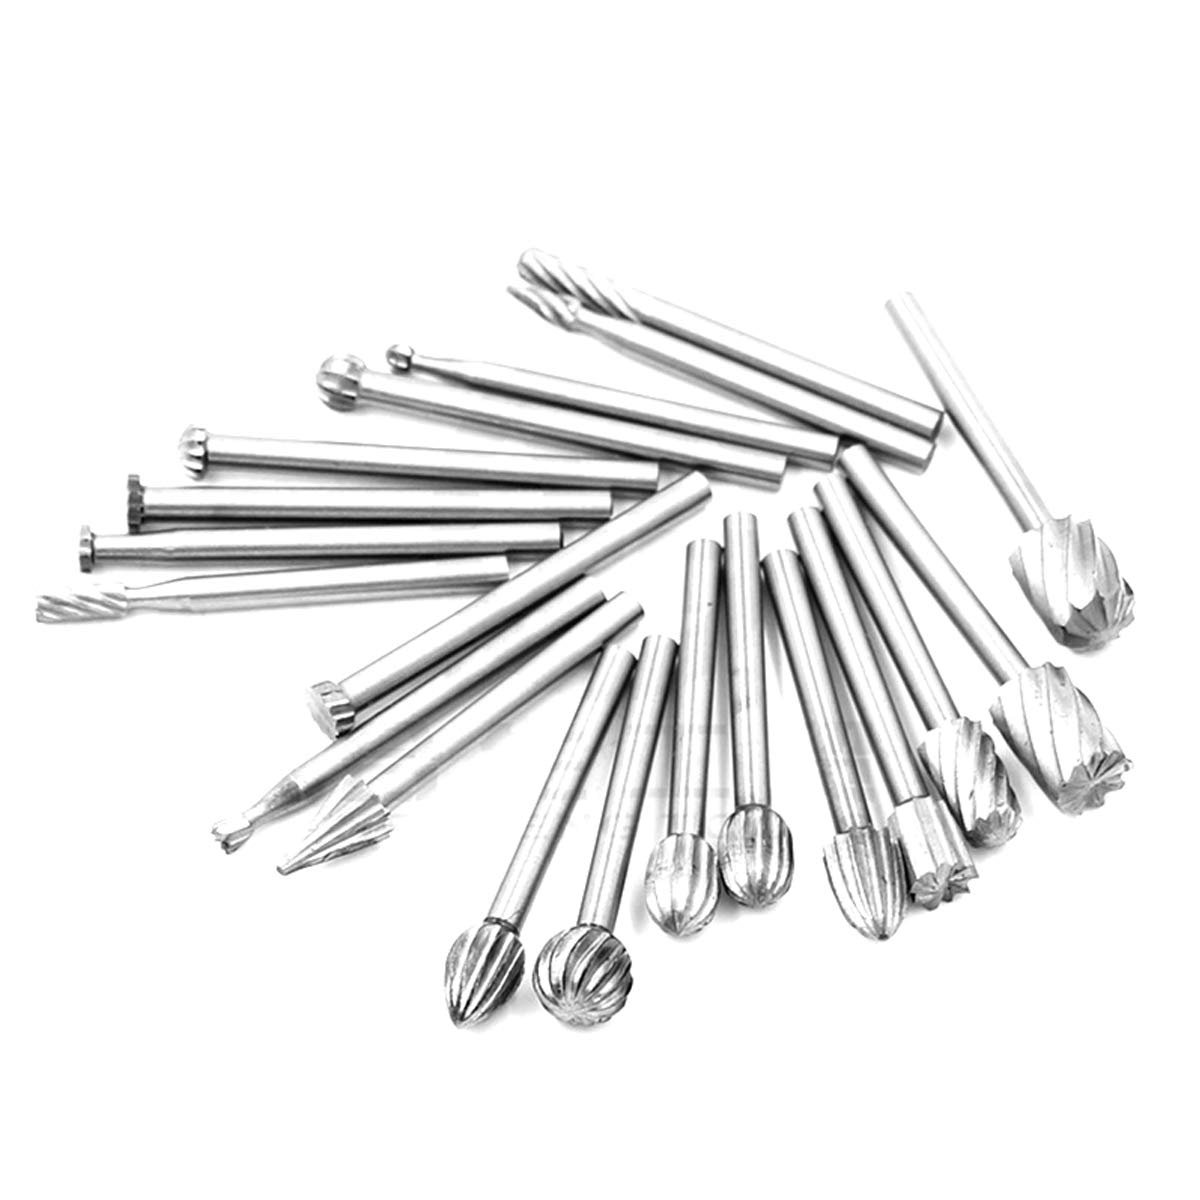 Carbide Burr Set Shank Diameter Double Cut Tungsten Carbide Burs Rotary File Carving Grinding Bit for Die Grinder Rotary Drill Tool 20pcs 1//8